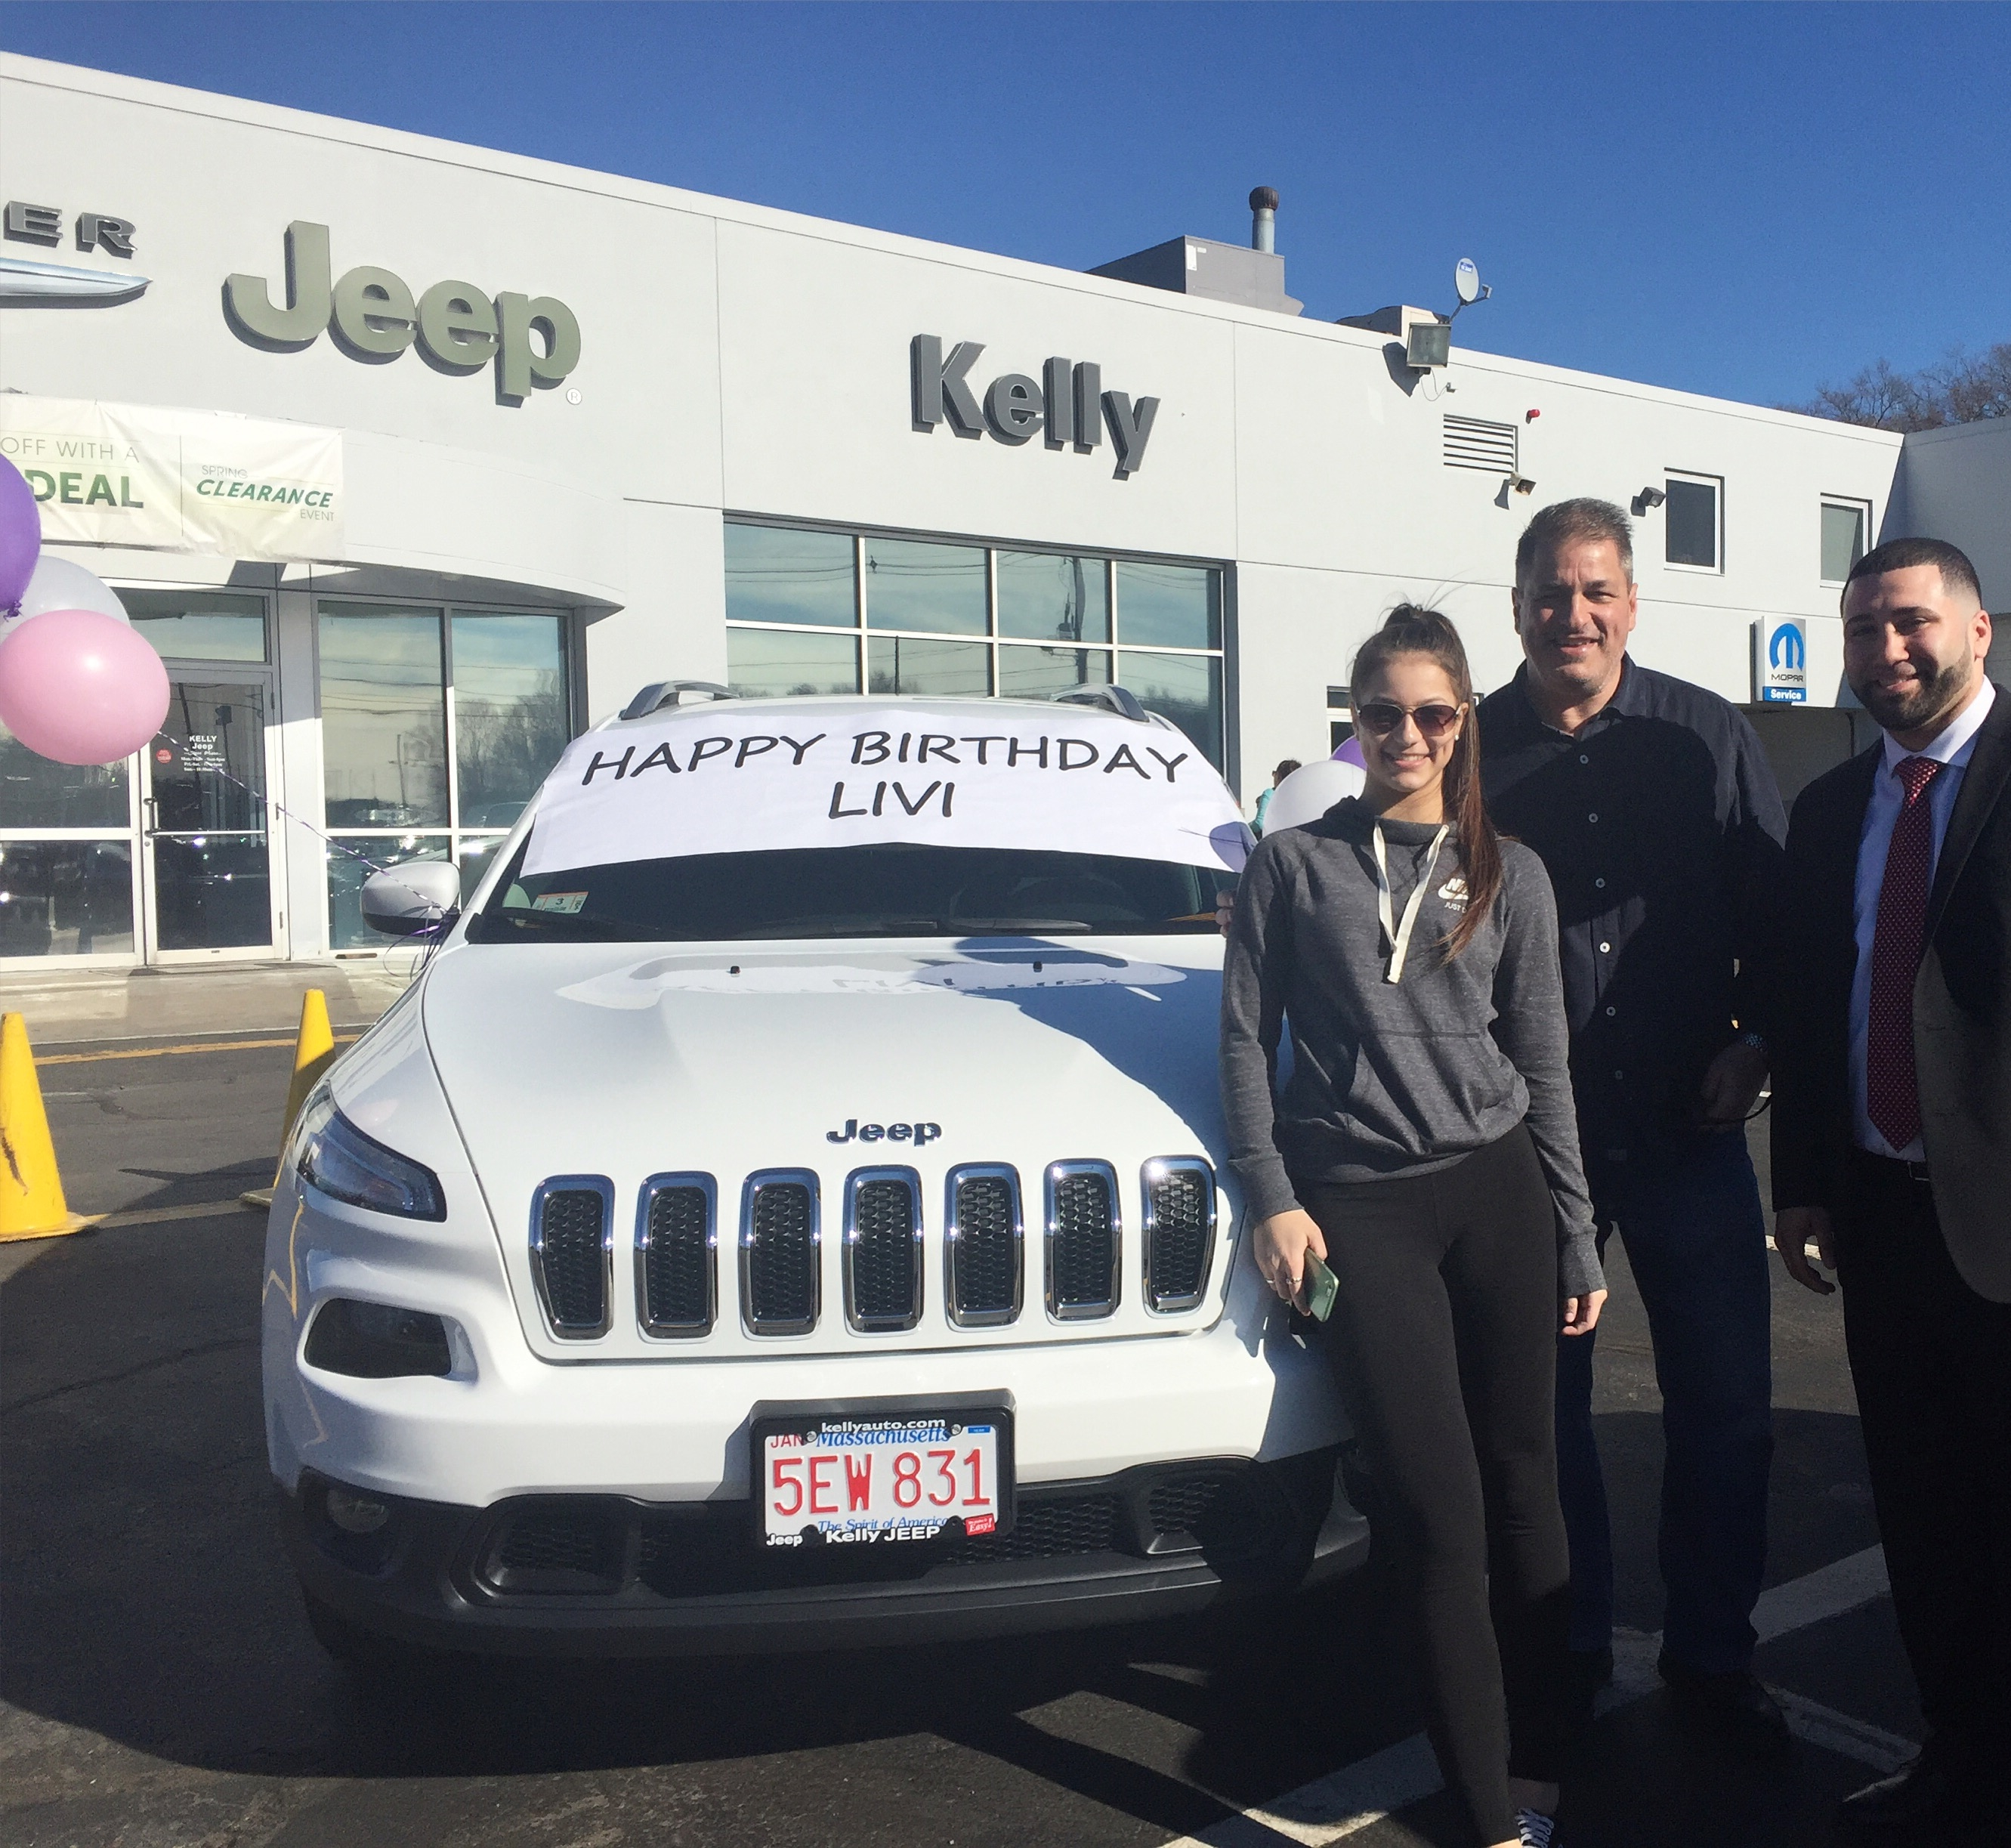 Lynnfield Ma Kelly Jeep Chrysler Find Kelly Jeep Chrysler In